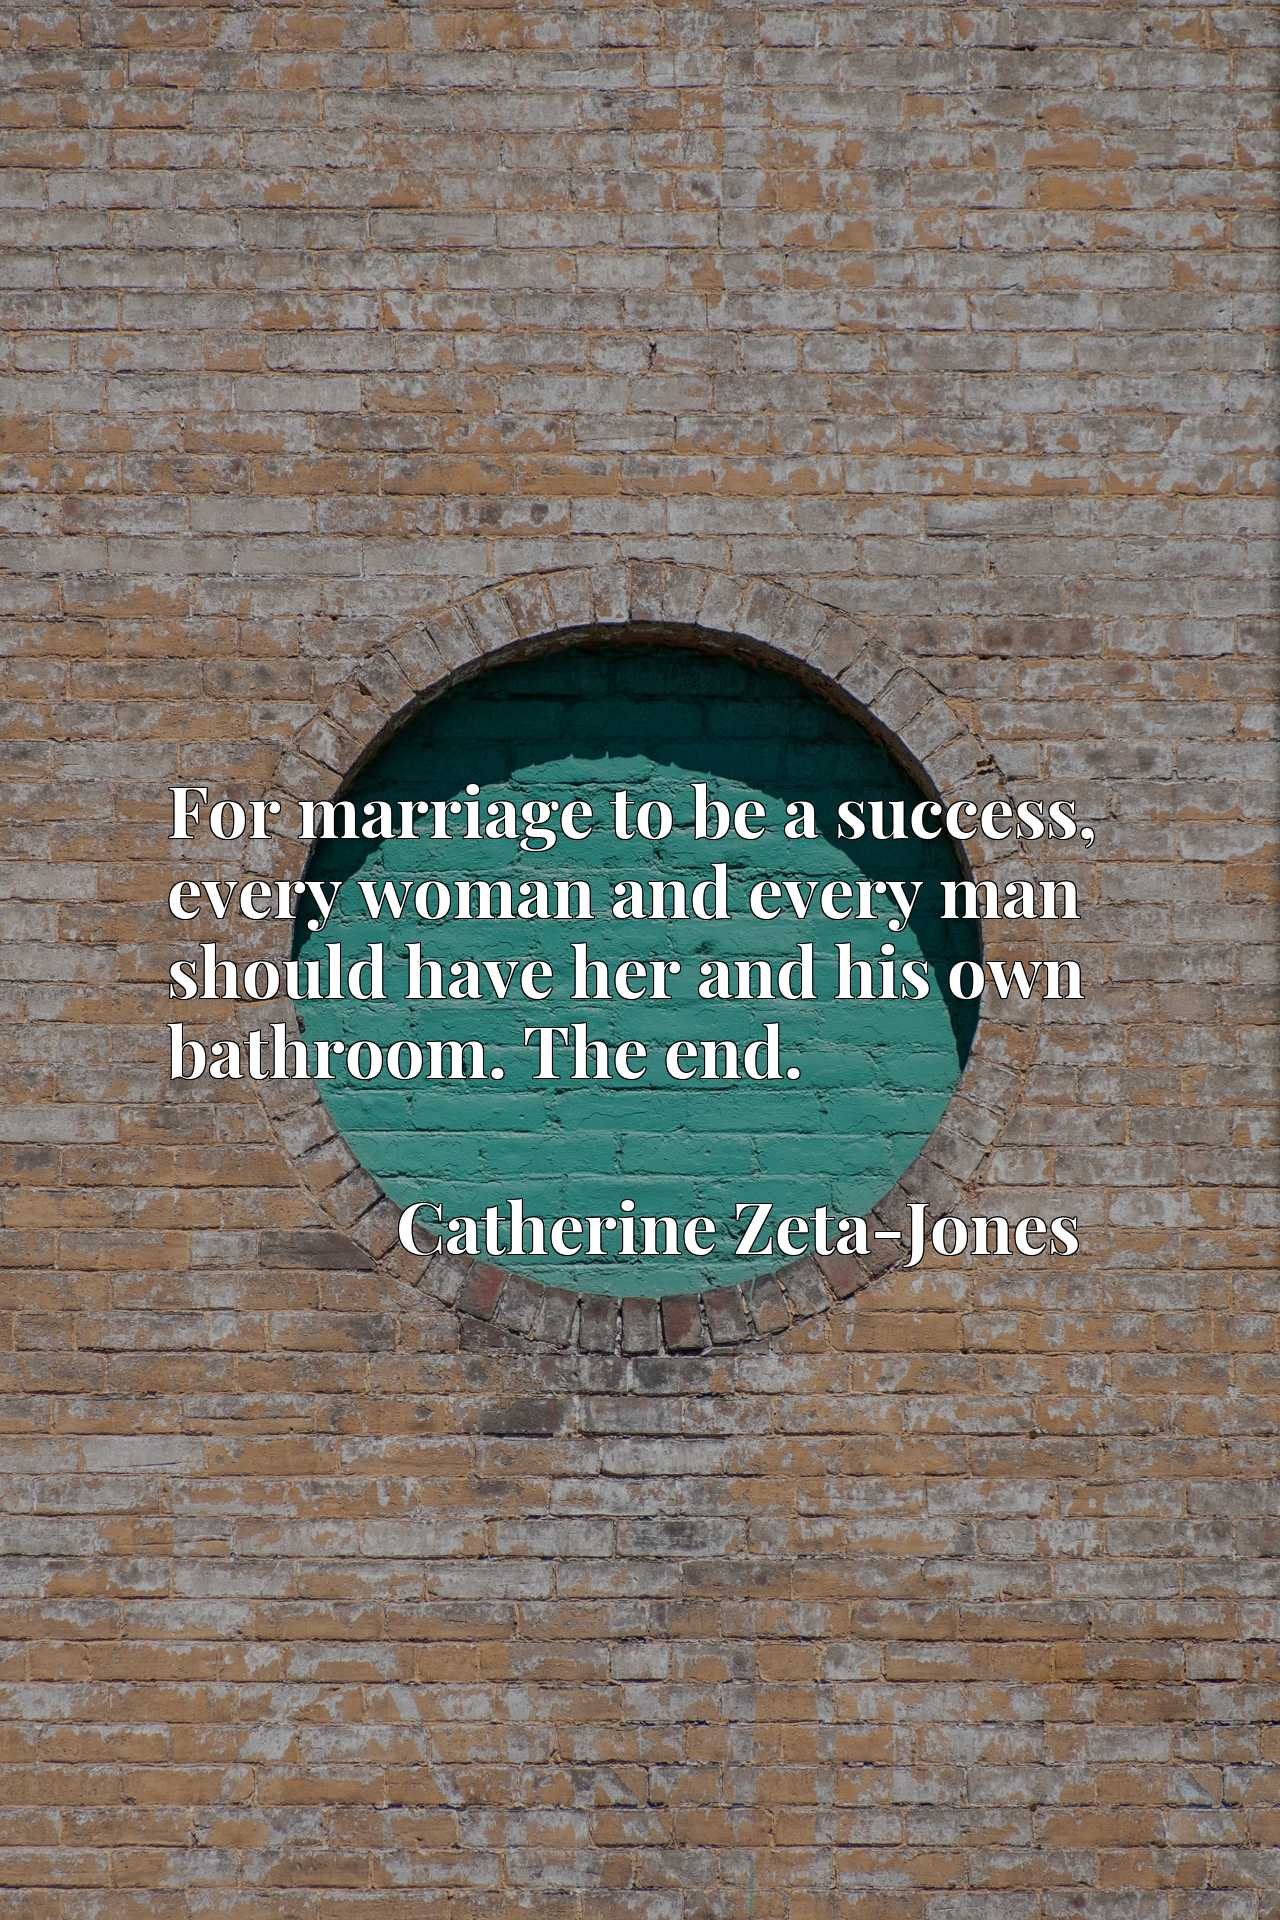 Quote Picture :For marriage to be a success, every woman and every man should have her and his own bathroom. The end.